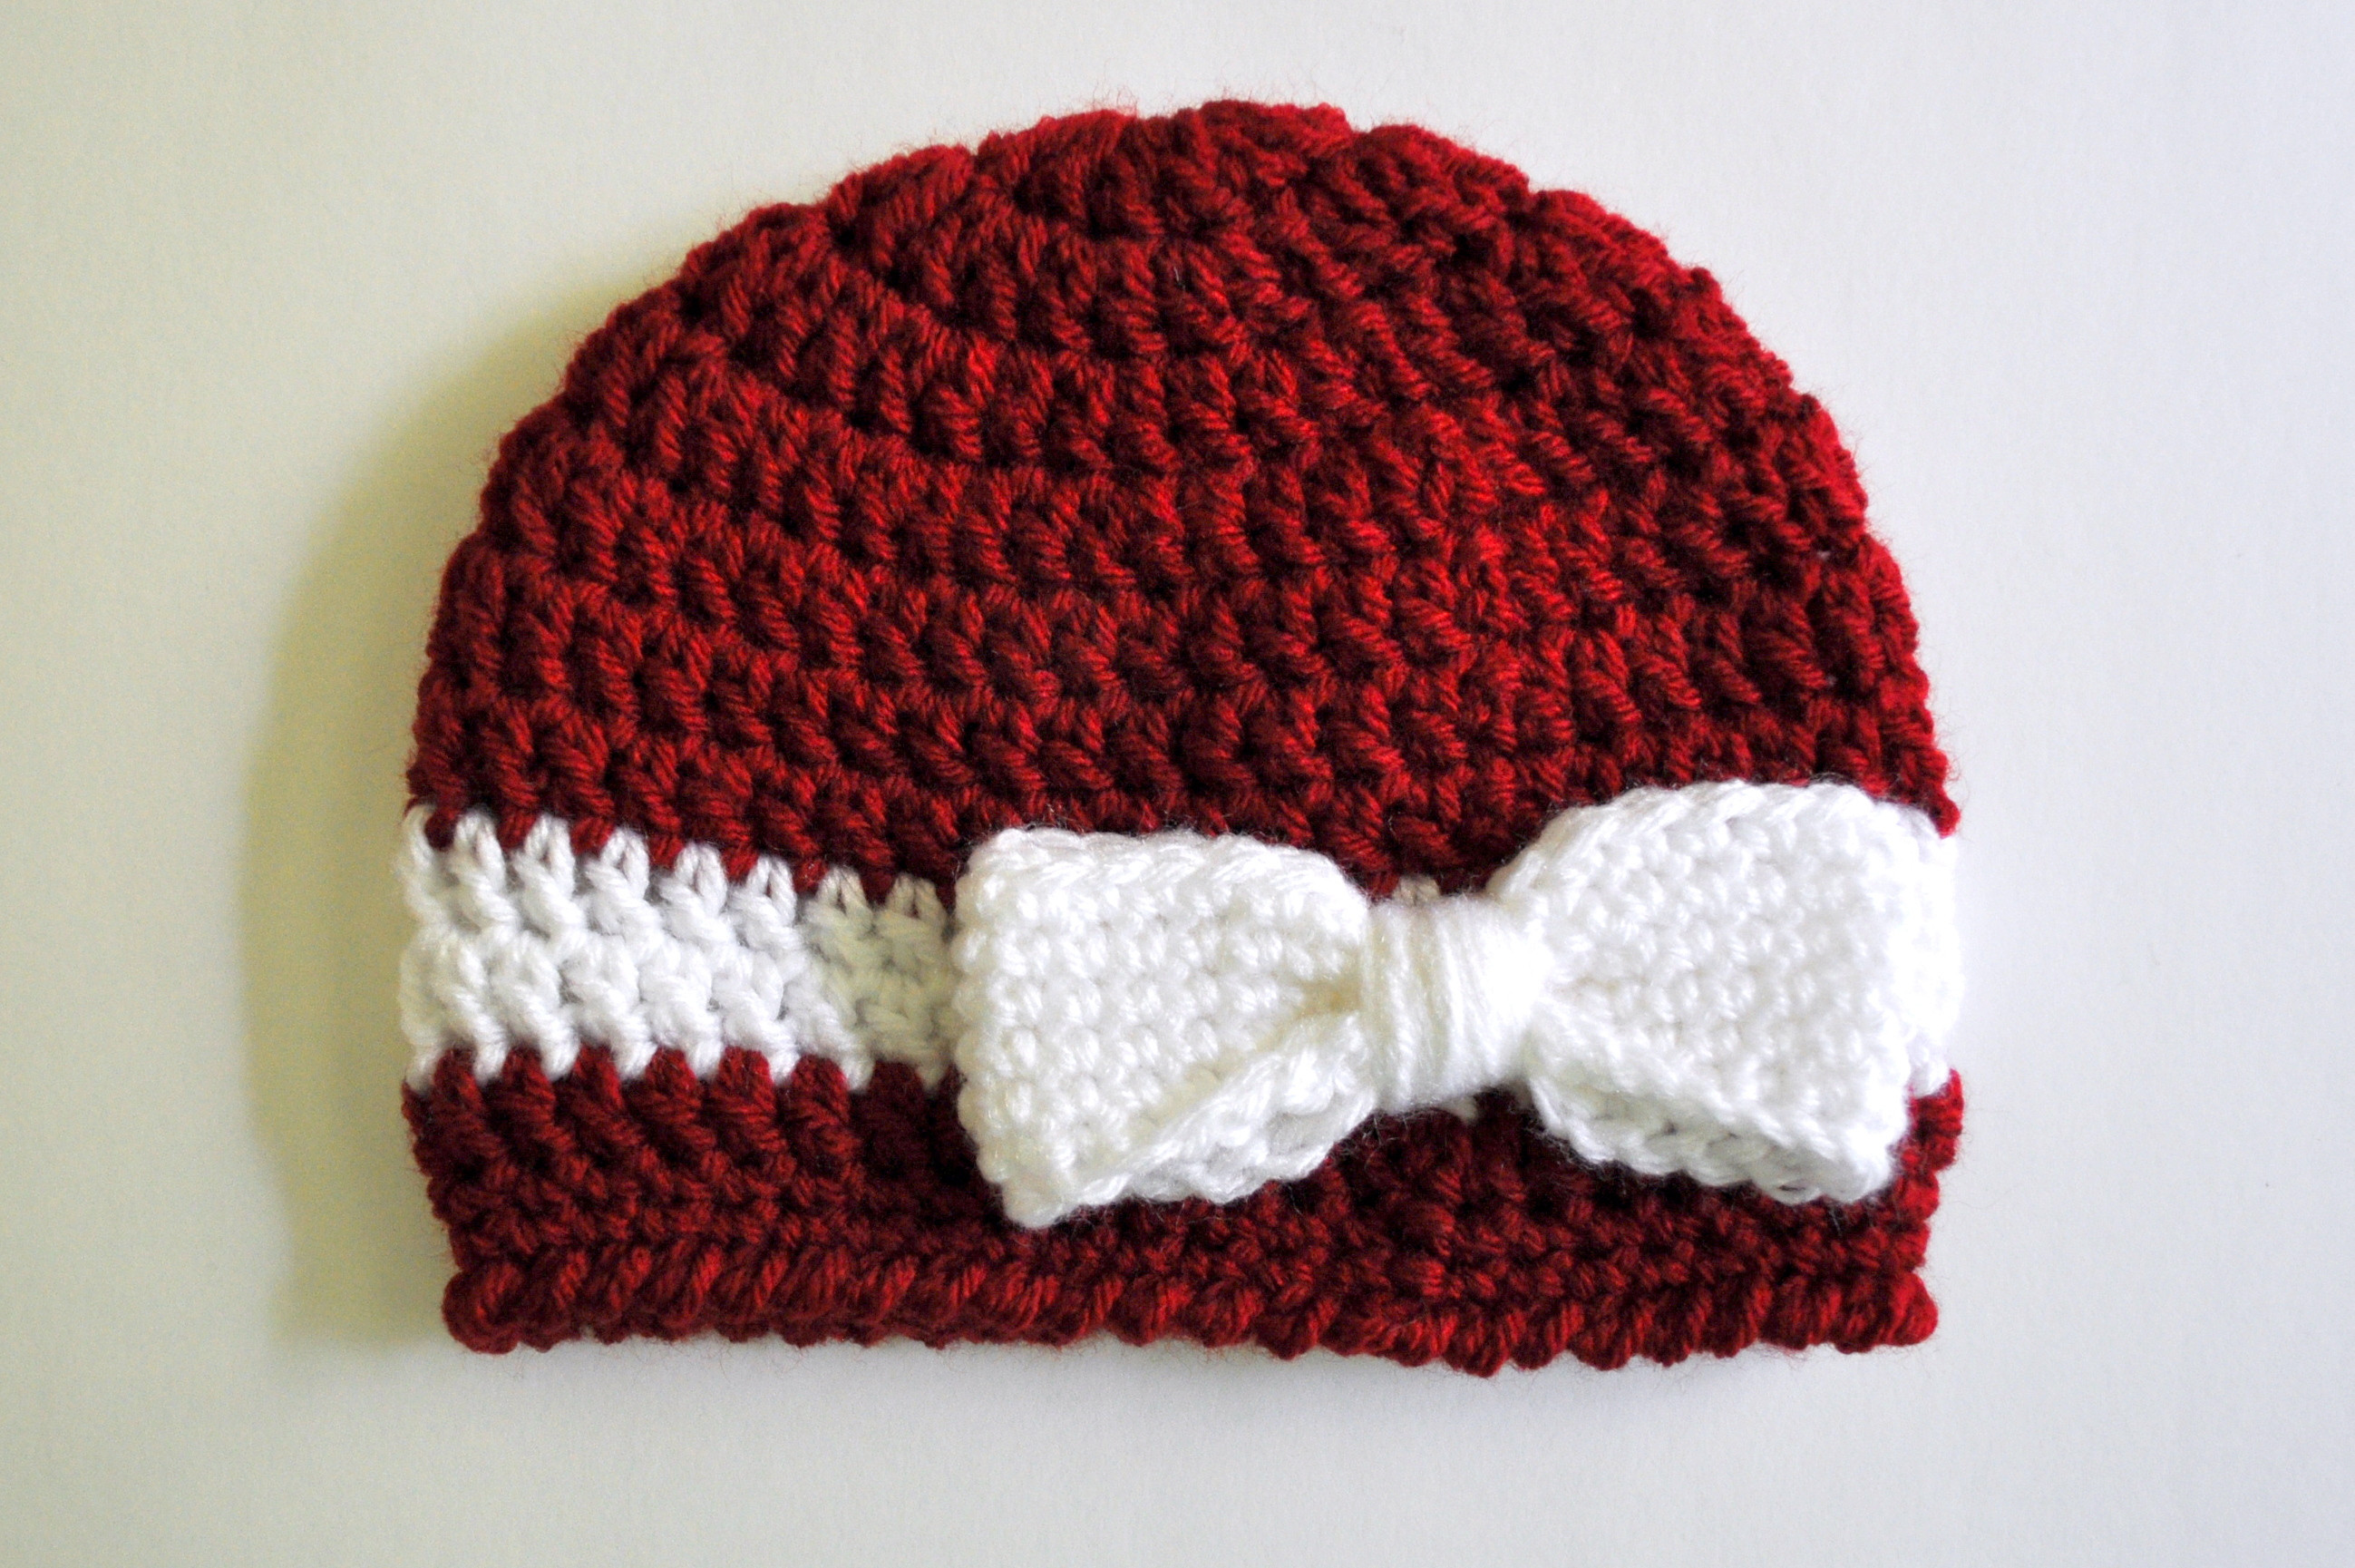 Newborn Baby Hat Crochet Pattern Lovely Free Pattern Crochet Bow and Ribbon Baby Hat Of Superb 44 Pictures Newborn Baby Hat Crochet Pattern